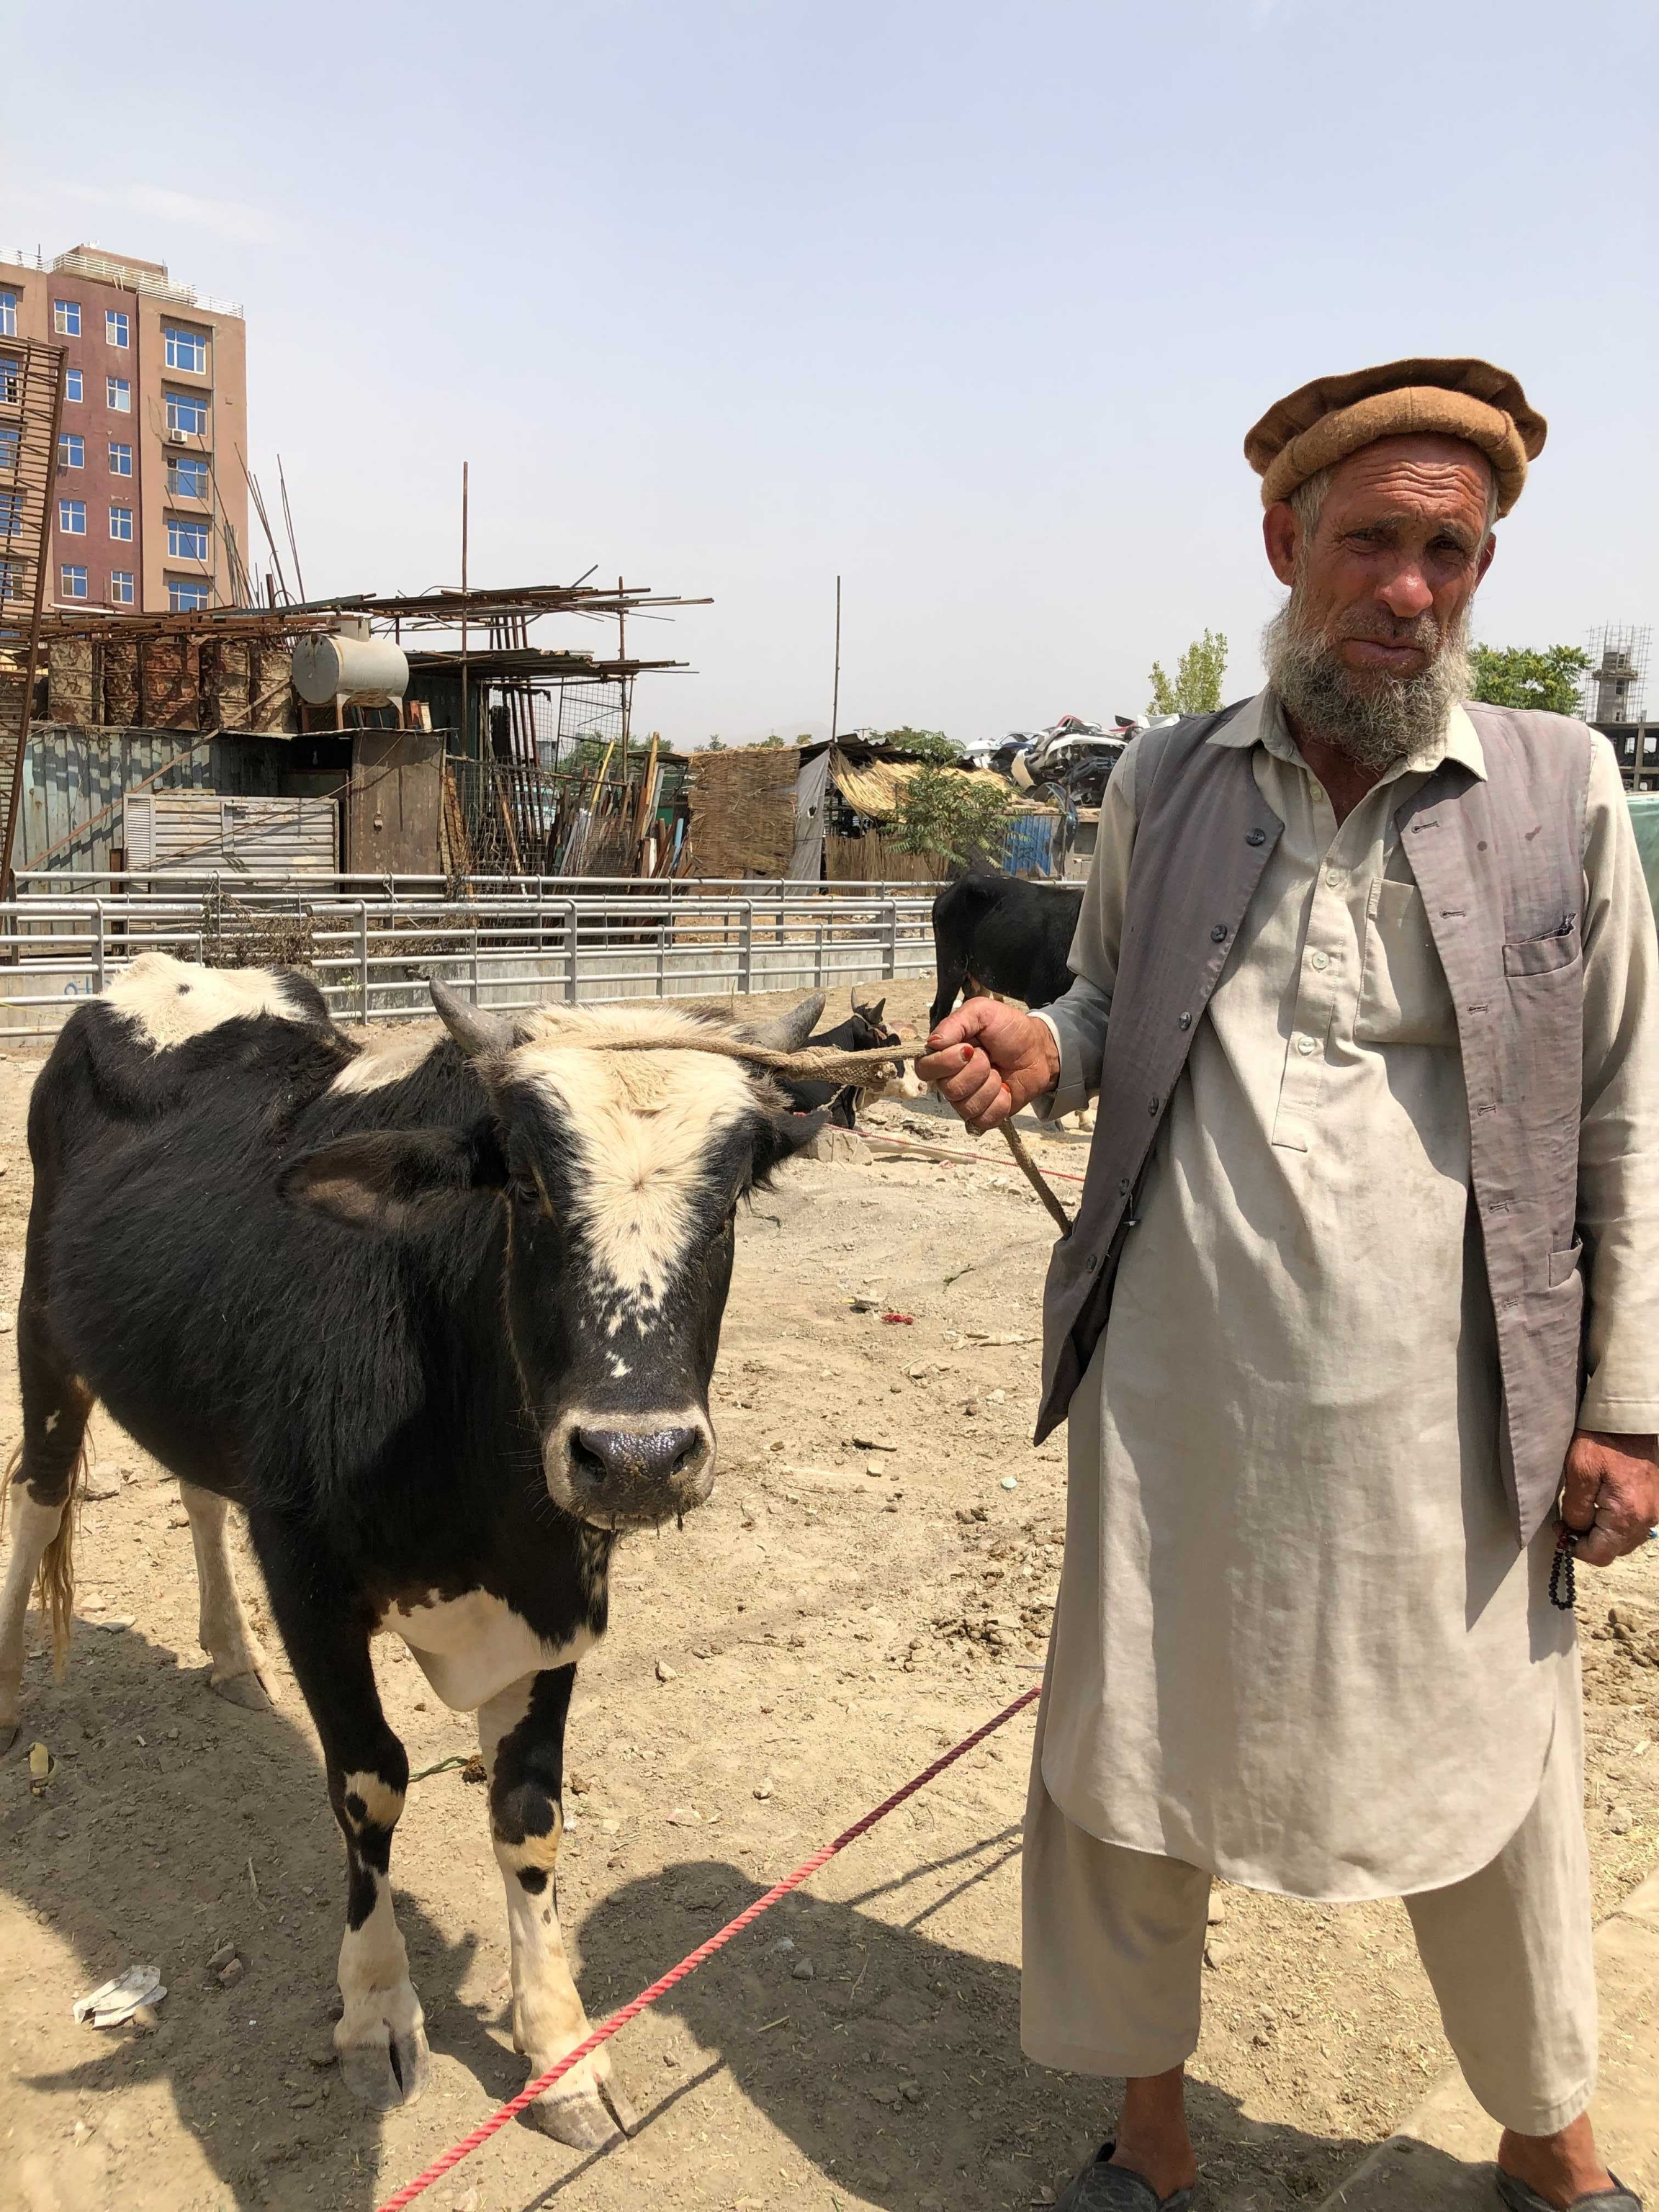 Khale Gol had to transport his cow through Taliban territory to get to Kabul. He raises them in the south, where it's cheaper, and brings them to Kabul to sell at a profit. This year, the fighting was much more intense, he says.